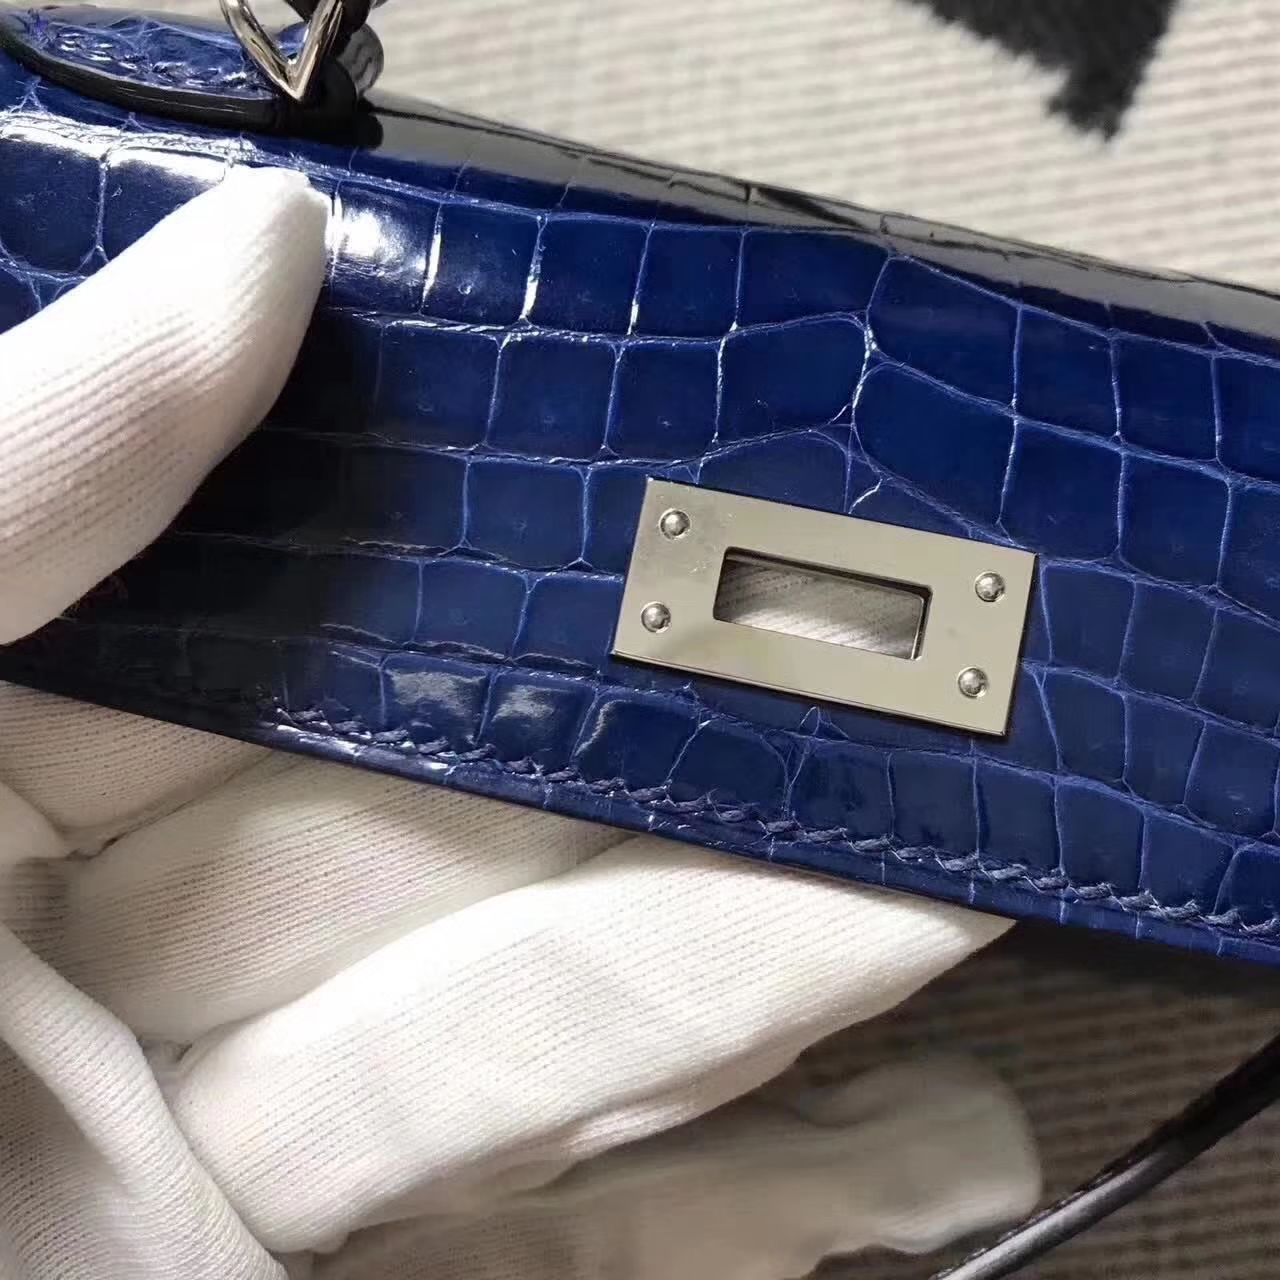 Sale Hermes Minikelly-2 Clutch Bag in Blue Saphir Crocodile Shiny Leather